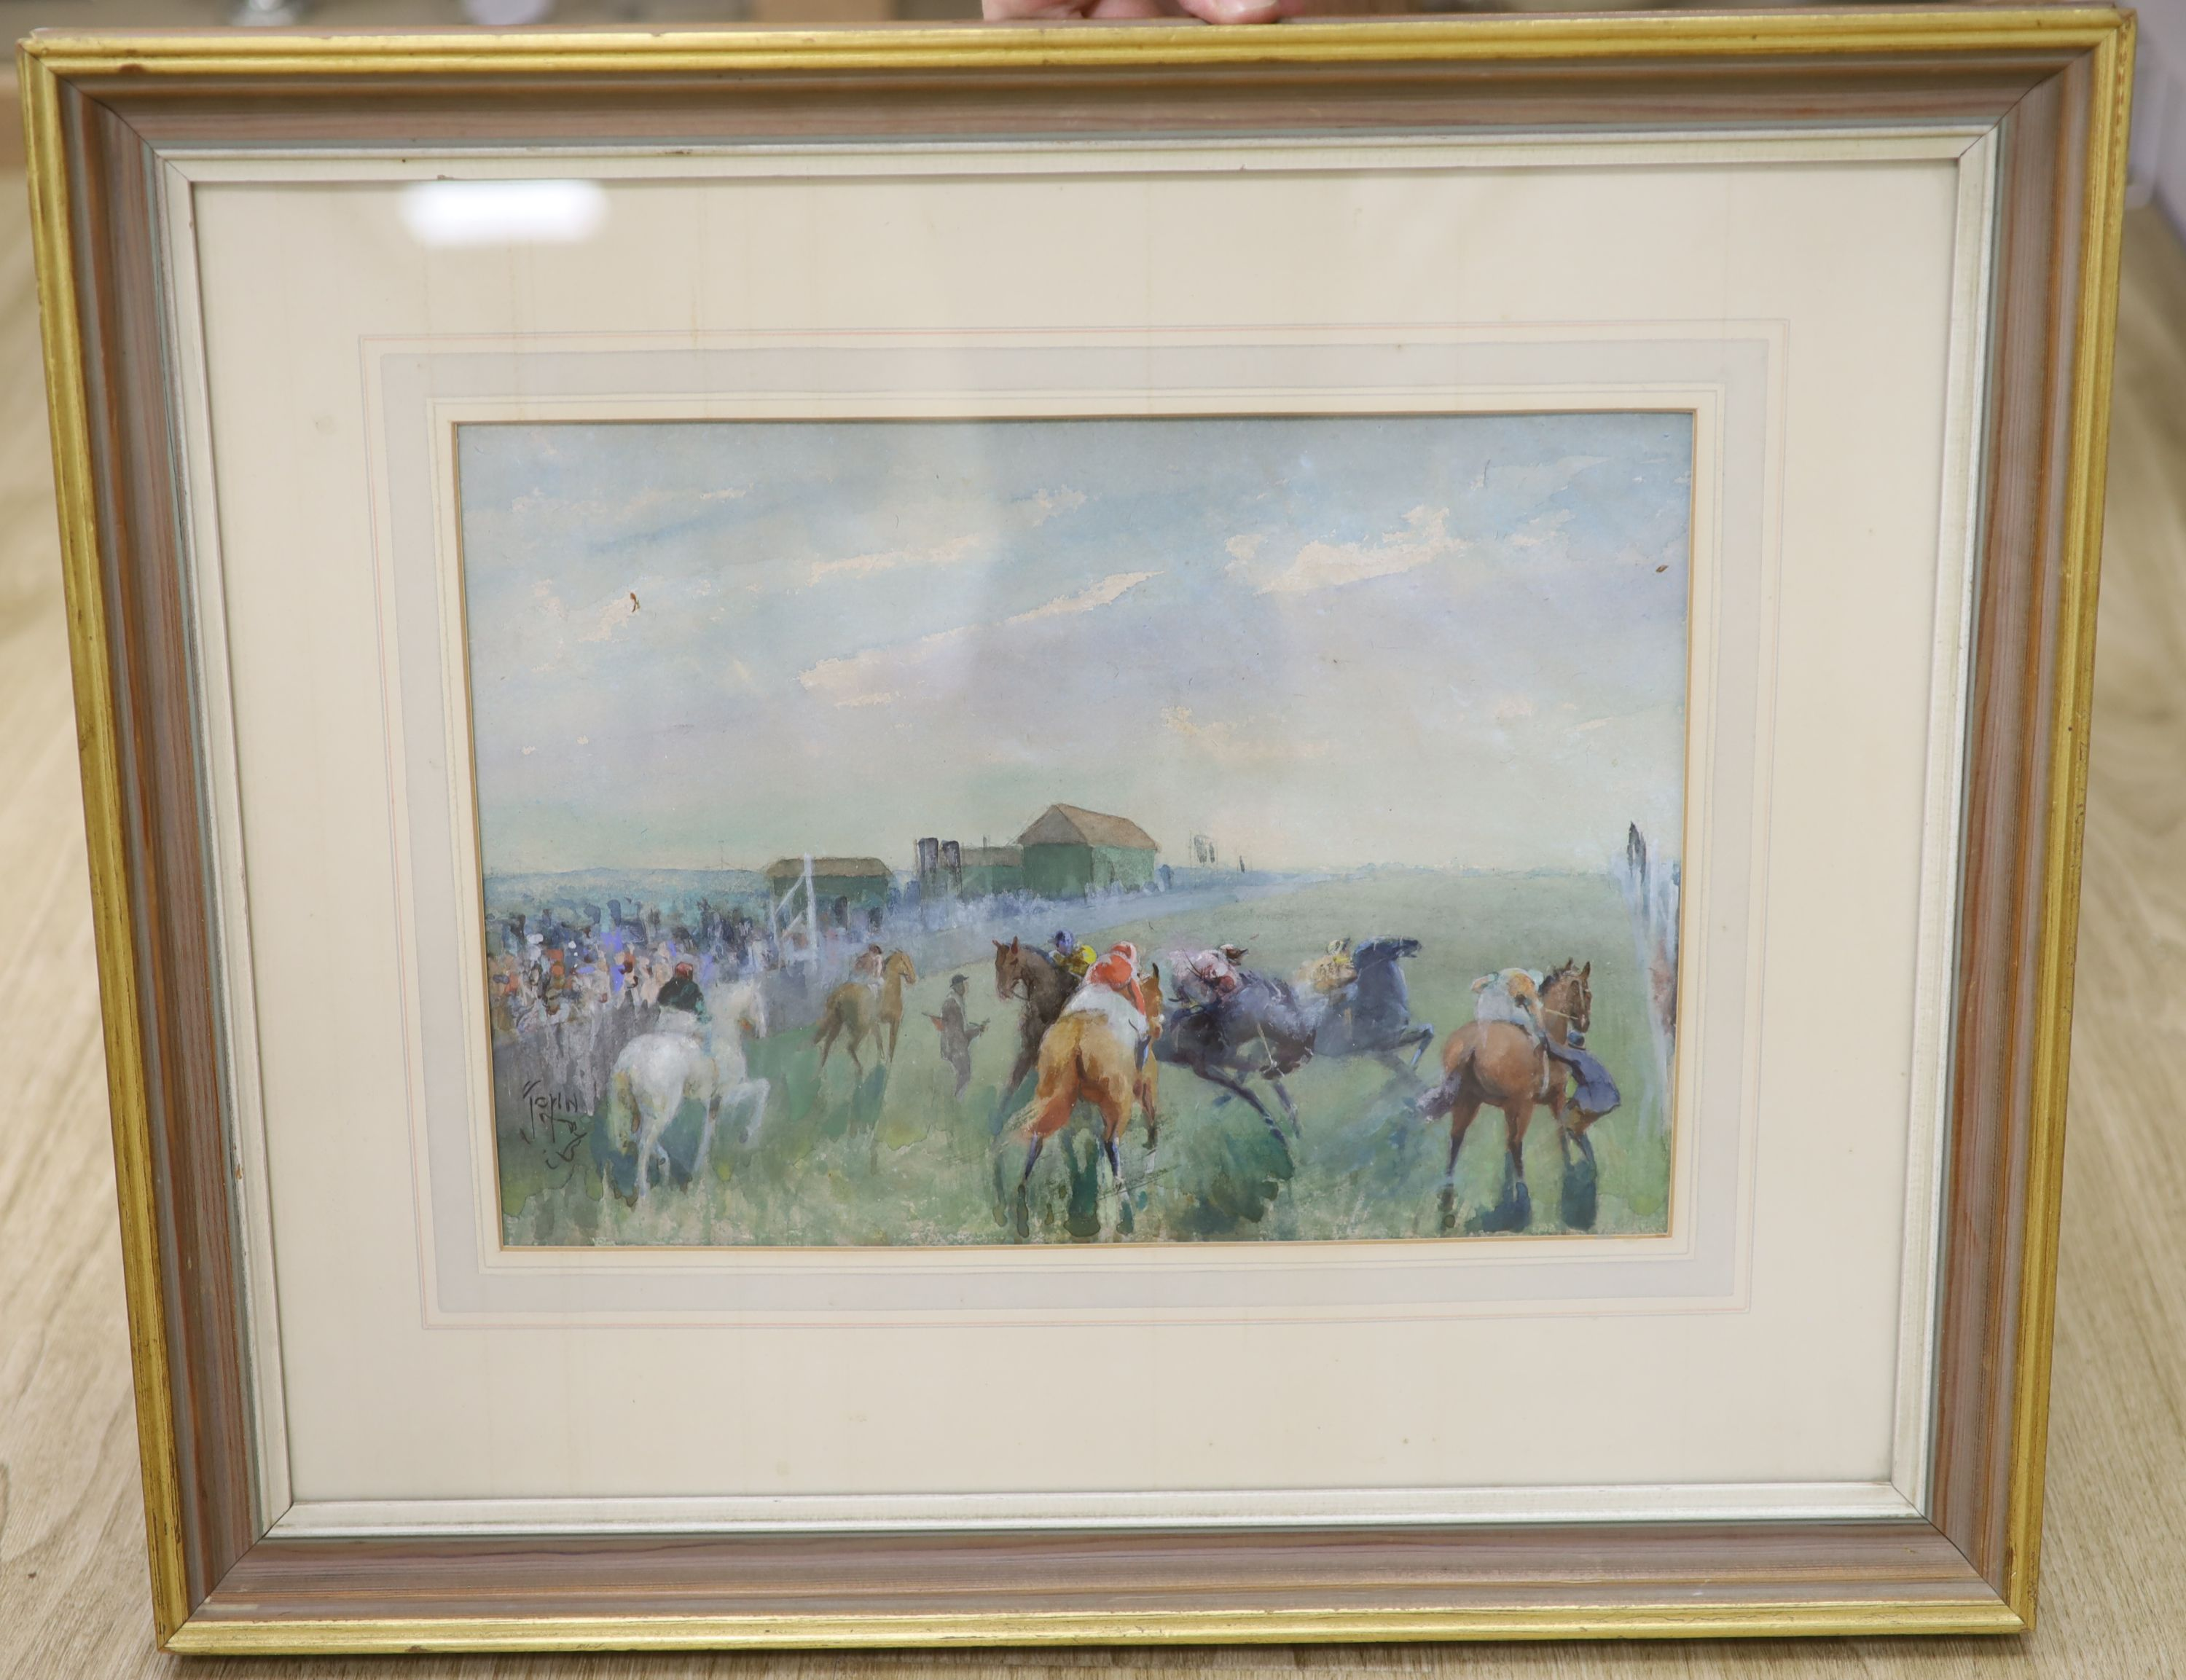 John Beer (1883-1915), watercolour, Horse race before the start, signed, 25 x 34cm - Image 3 of 3